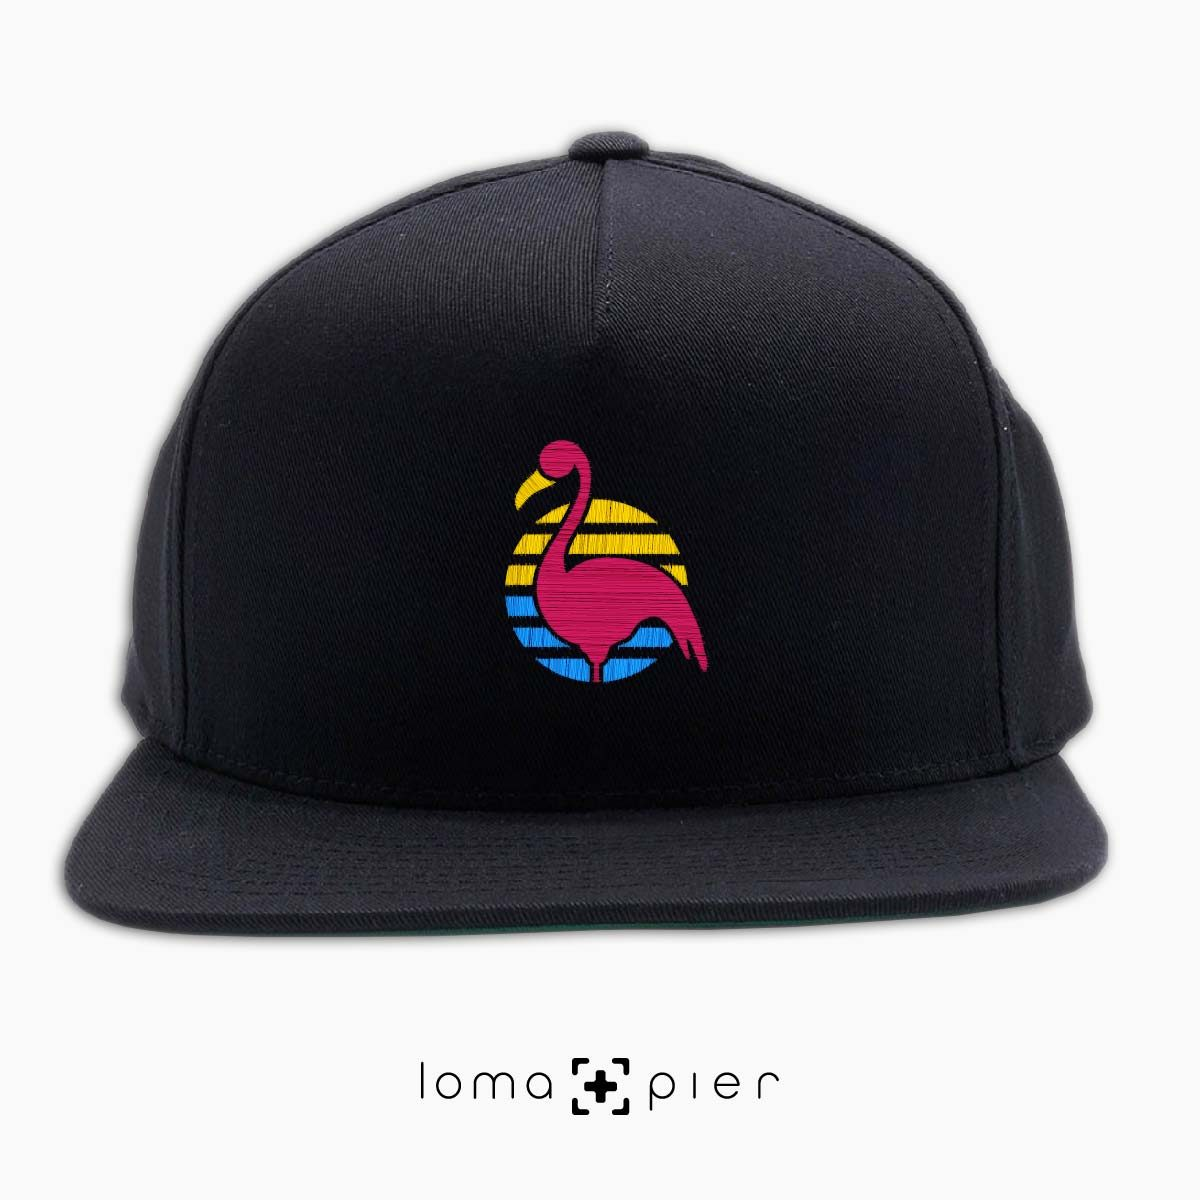 FLAMINGO icon embroidered on a black classic snapback hat by loma+pier hat store